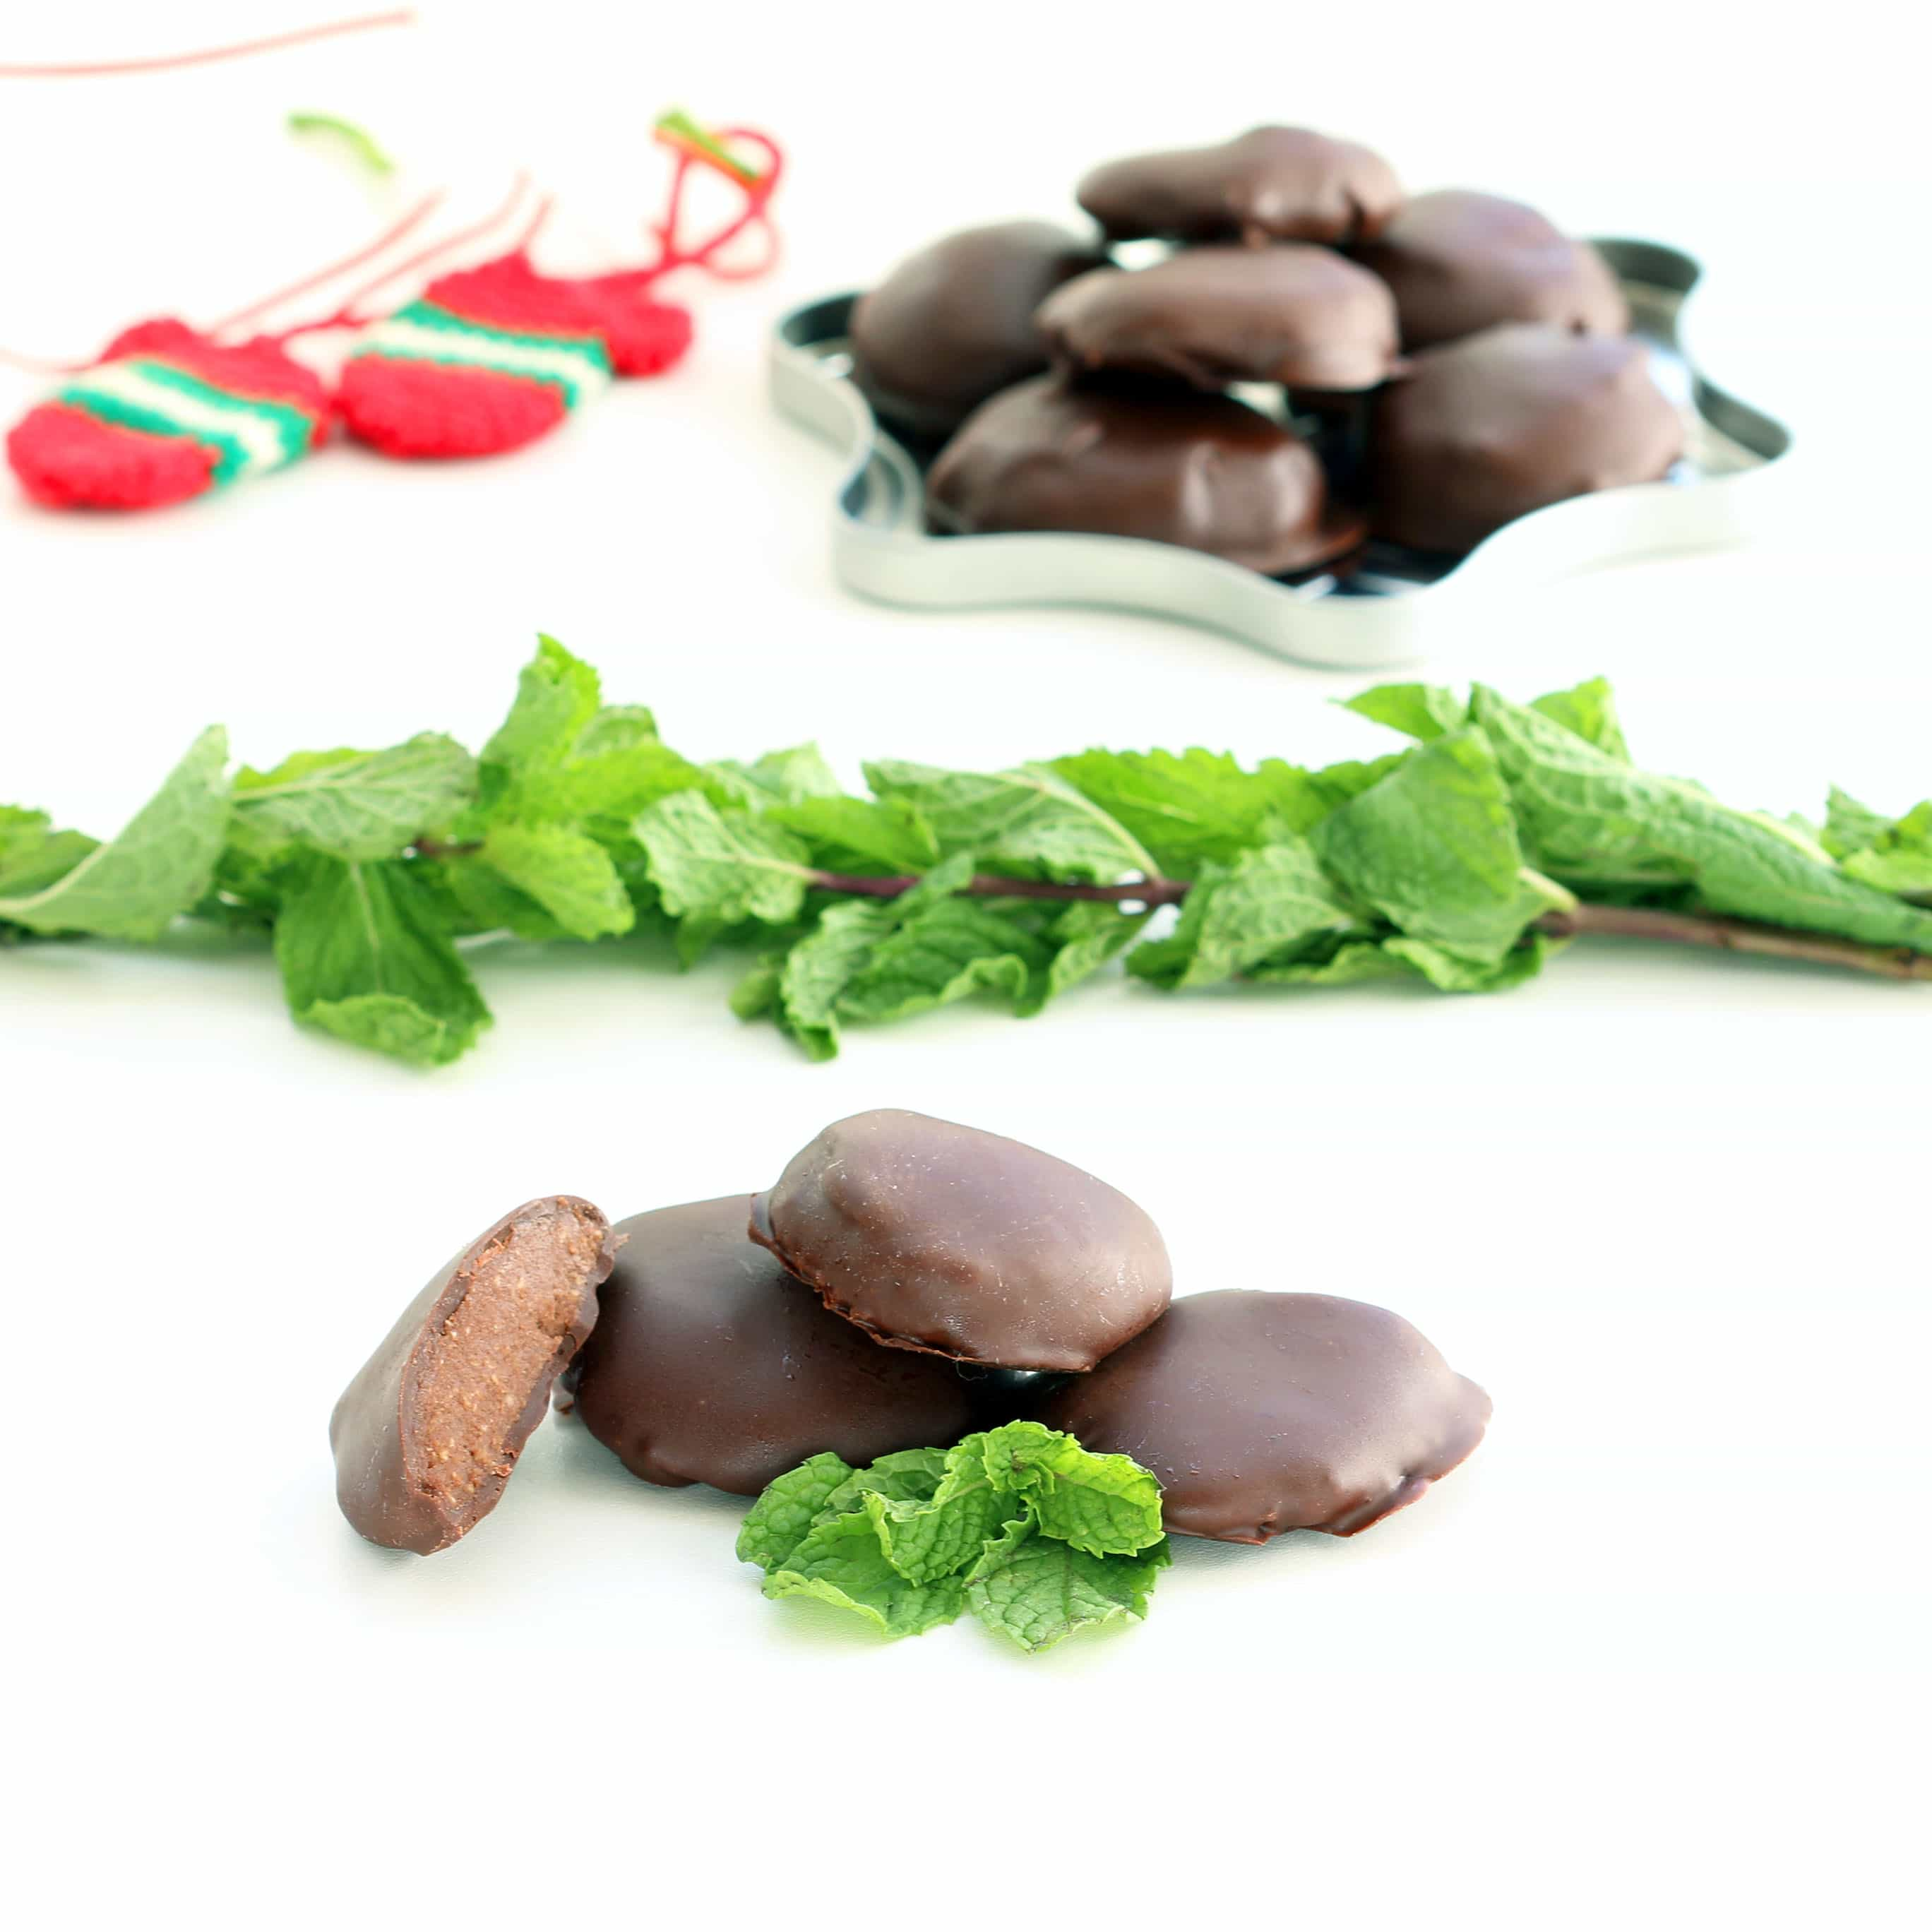 Double Chocolate Peppermint Patties (Gluten-free, Plant-based / Vegan, Refined Sugar-free)